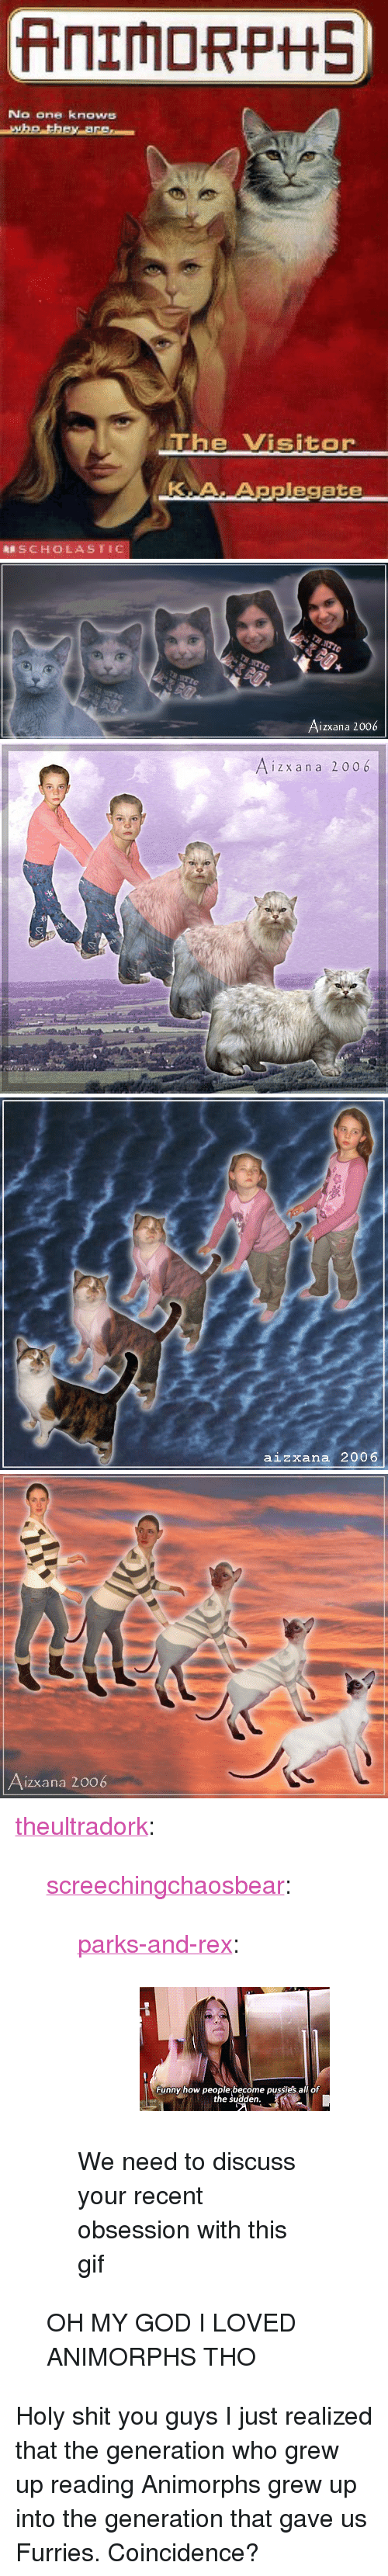 """Animorphs: No one knows  e Visitor  KA.Applegate  SCHOLASTIC   Aizxana 2006   i z x an a 2006   aizxana 2006   izxana 2006 <p><a href=""""http://theultradork.tumblr.com/post/172923844978/screechingchaosbear-parks-and-rex-we-need"""" class=""""tumblr_blog"""">theultradork</a>:</p>  <blockquote><p><a href=""""http://screechingchaosbear.tumblr.com/post/166140279209/parks-and-rex-we-need-to-discuss-your-recent"""" class=""""tumblr_blog"""">screechingchaosbear</a>:</p> <blockquote> <p><a href=""""http://parksandrex.com/post/166128235700"""" class=""""tumblr_blog"""">parks-and-rex</a>:</p> <blockquote><figure data-orig-height=""""160"""" data-orig-width=""""245""""><img src=""""https://78.media.tumblr.com/0d774fafe645b92e4abc1fcfeaddb0f8/tumblr_inline_oxfkbssugd1ty99rh_540.gif"""" data-orig-height=""""160"""" data-orig-width=""""245""""/></figure></blockquote>  <p>We need to discuss your recent obsession with this gif </p> </blockquote> <p>OH MY GOD I LOVED ANIMORPHS THO</p></blockquote>  <p>Holy shit you guys I just realized that the generation who grew up reading Animorphs grew up into the generation that gave us Furries. Coincidence?</p>"""